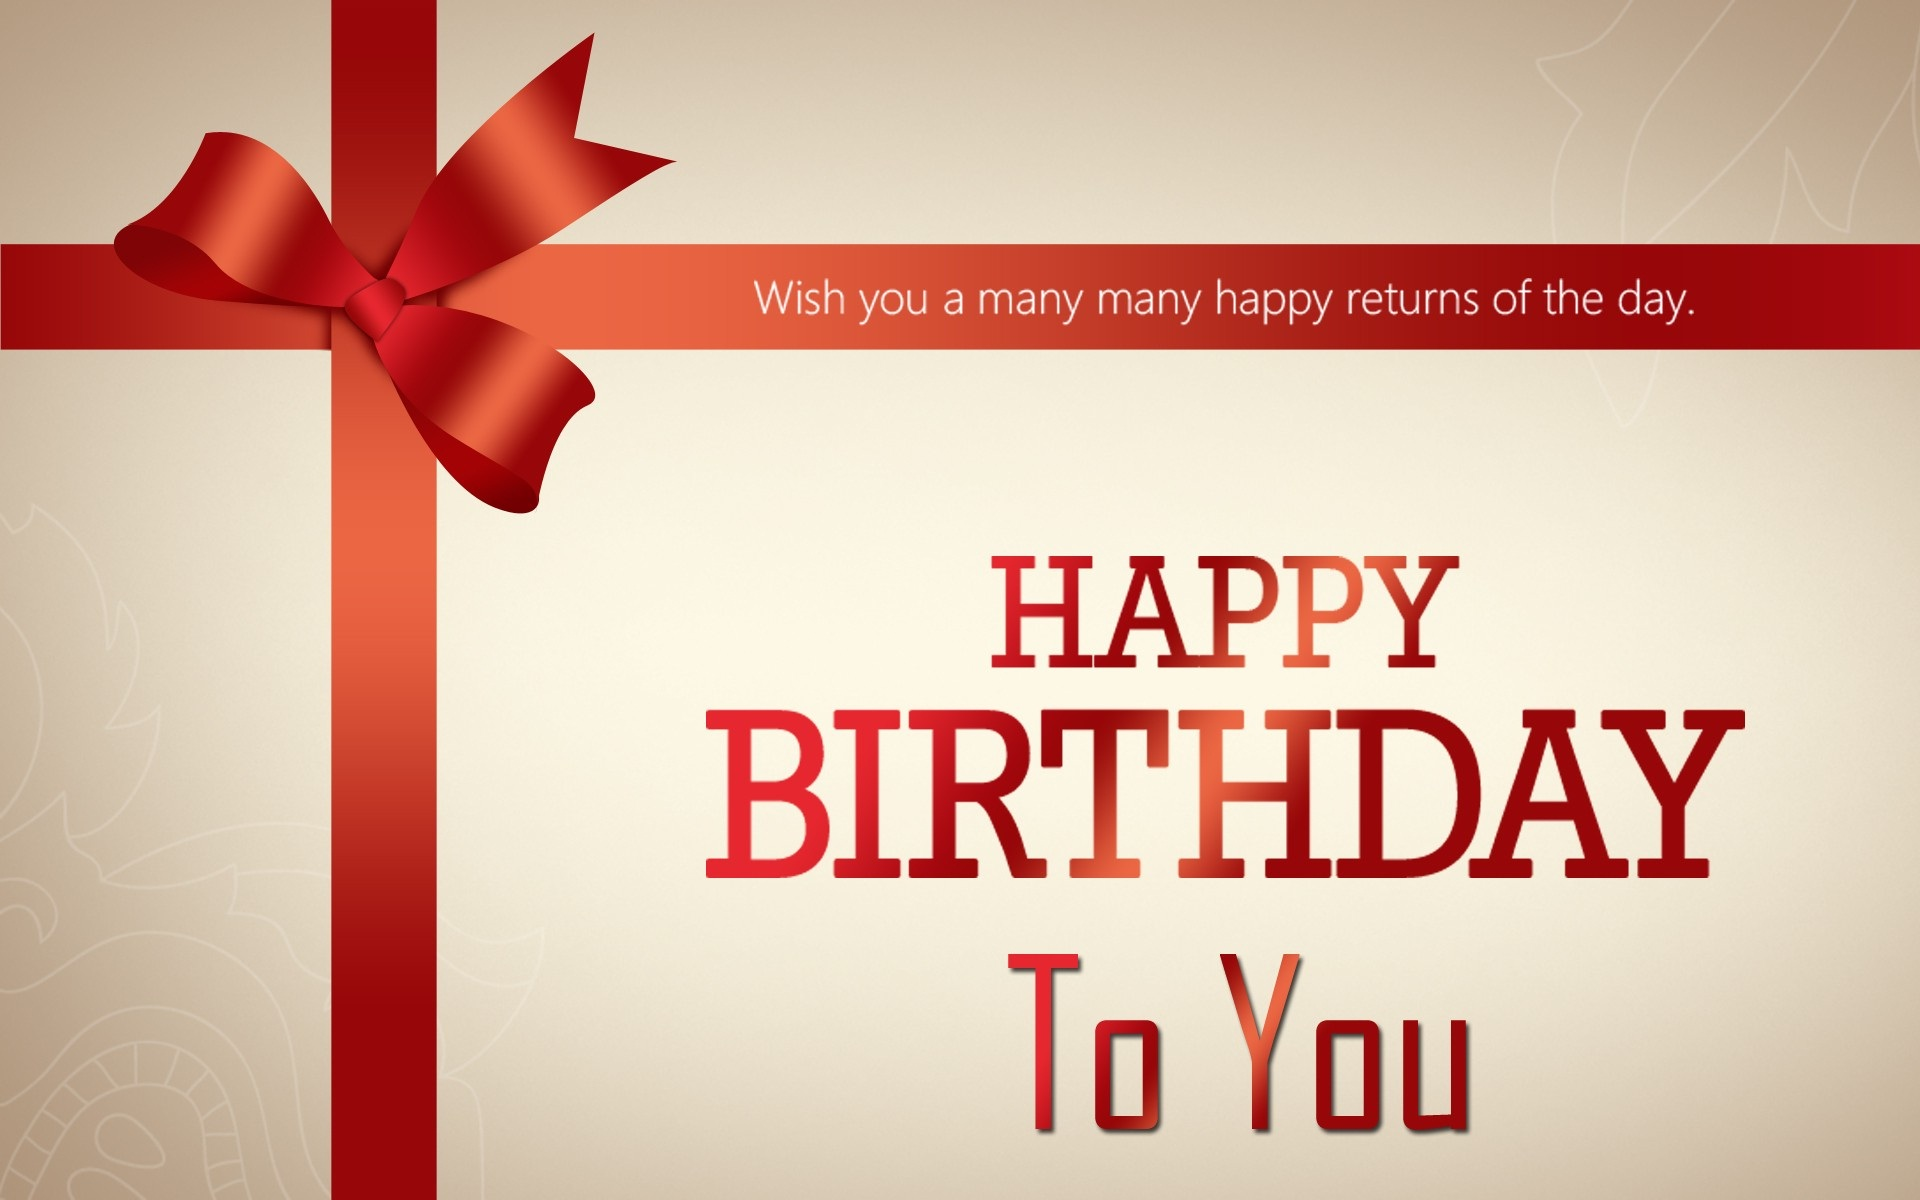 birthday wishes greeting card free download ; 4376c81b498f0a5a6a12dc3836143d9f